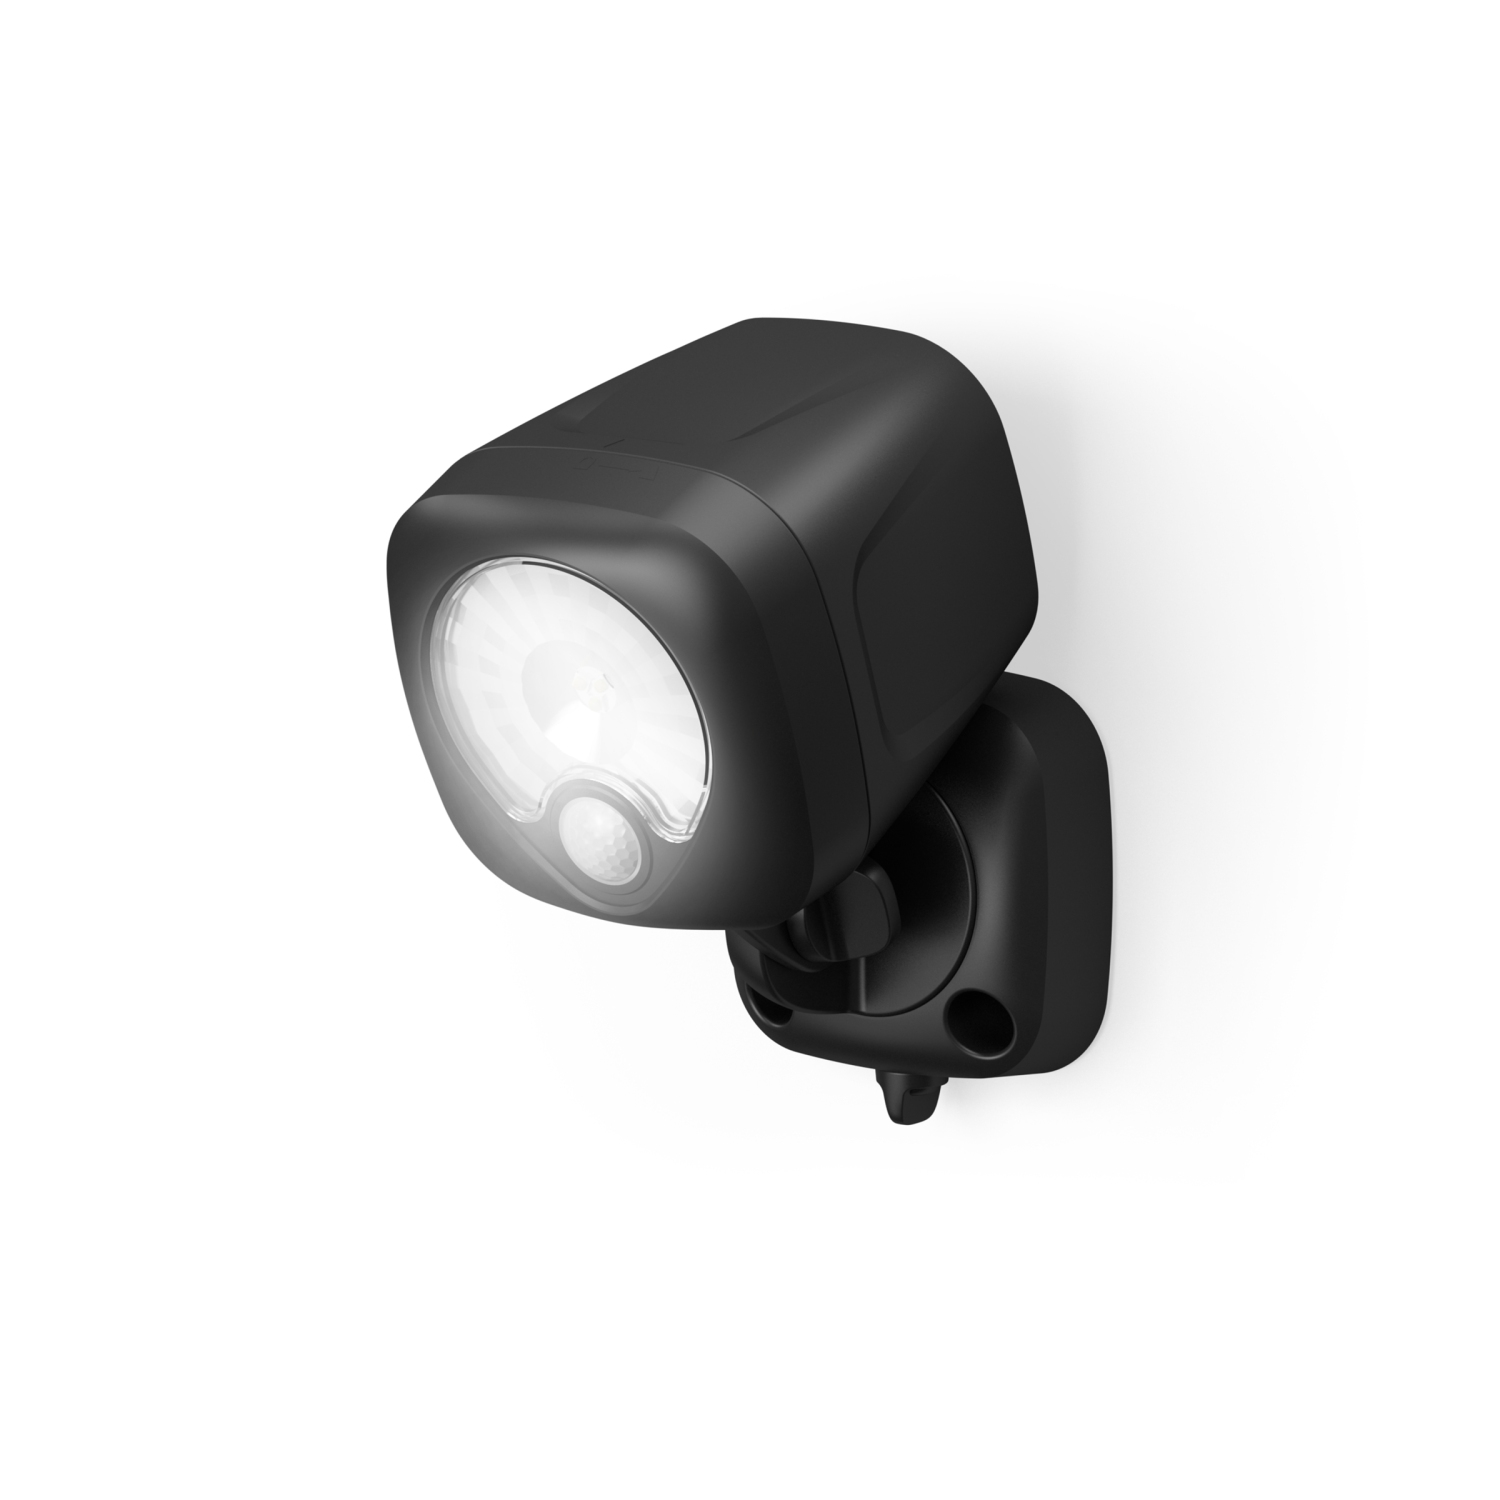 Security Light Camera Combo Shapeyourminds Com